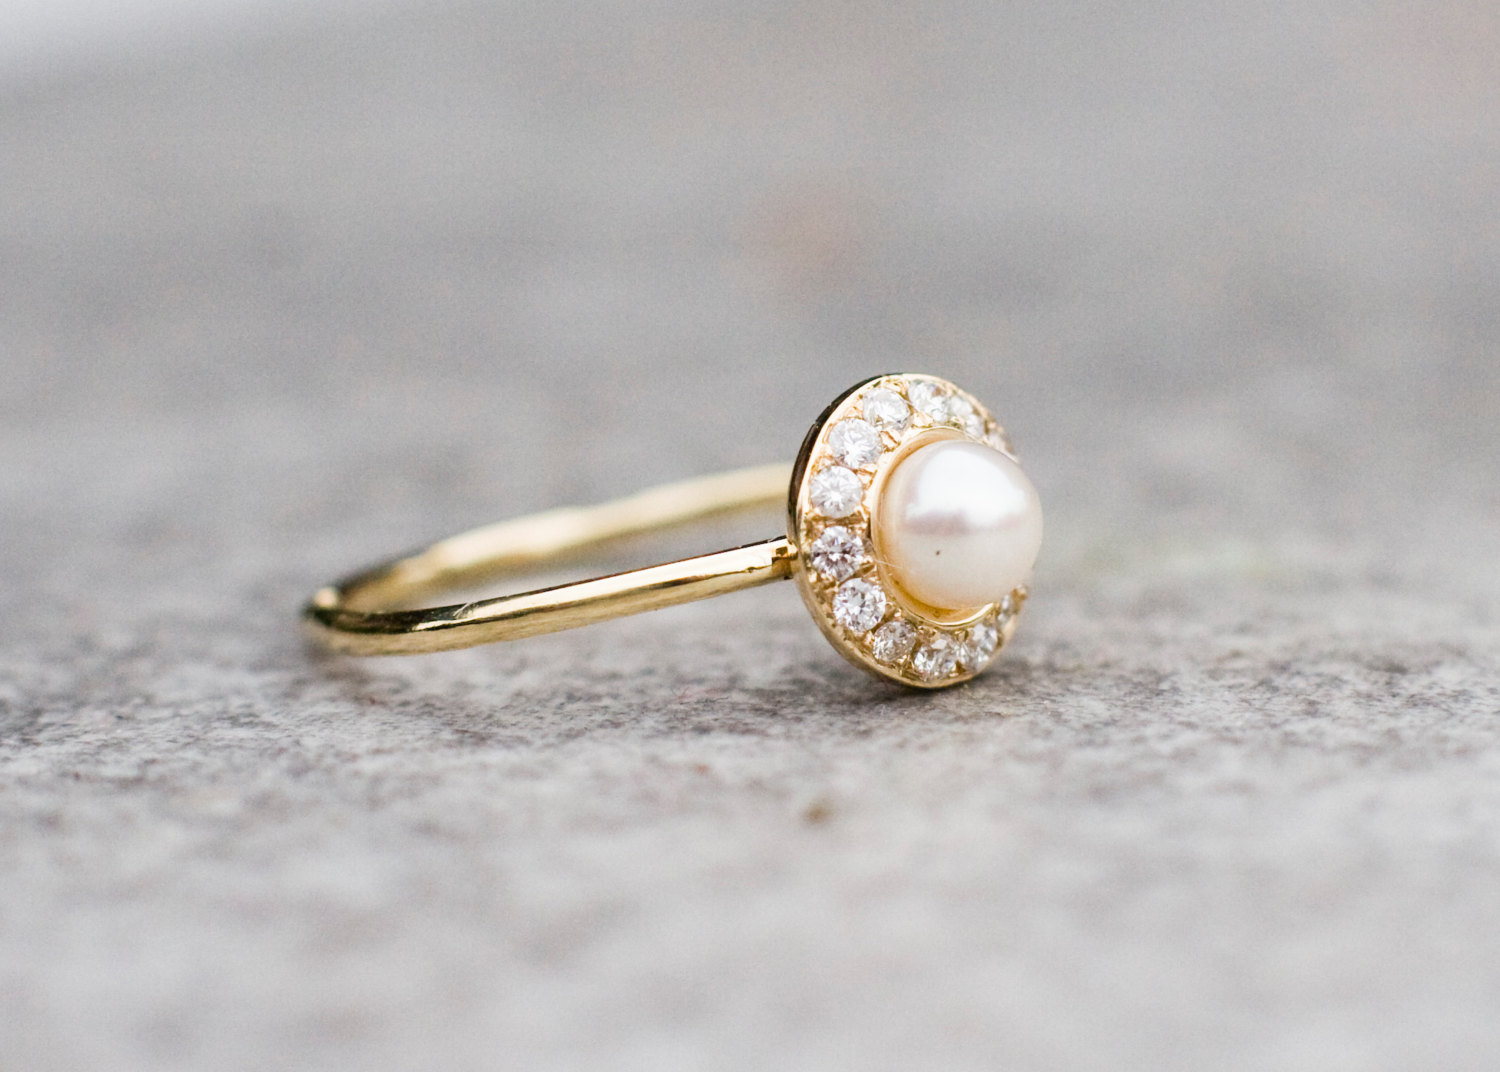 Pearl Wedding Rings.White Pearl Wedding Ring With Diamonds In 14k Gold Pearl Engagement Ring Fine Jewelry From Arpelc Jewelry